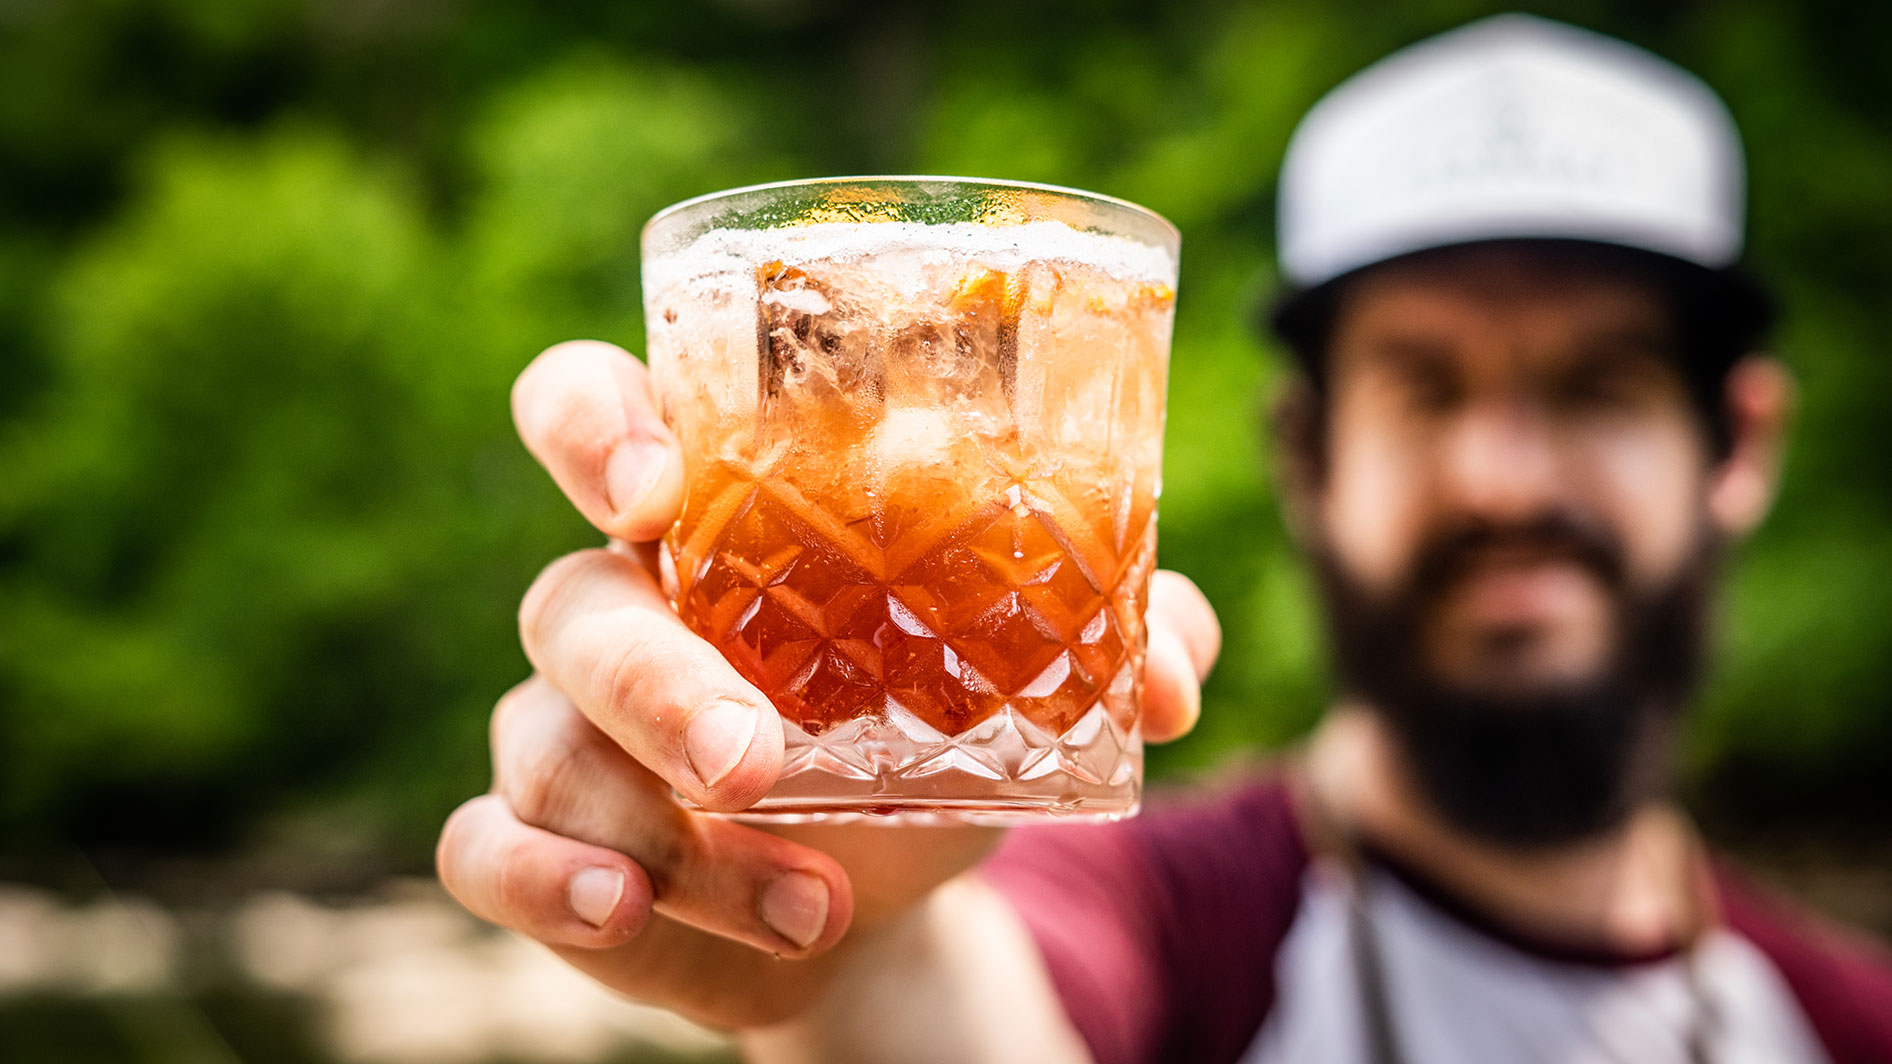 AJ Gottschalk with and Old Fashioned cocktail